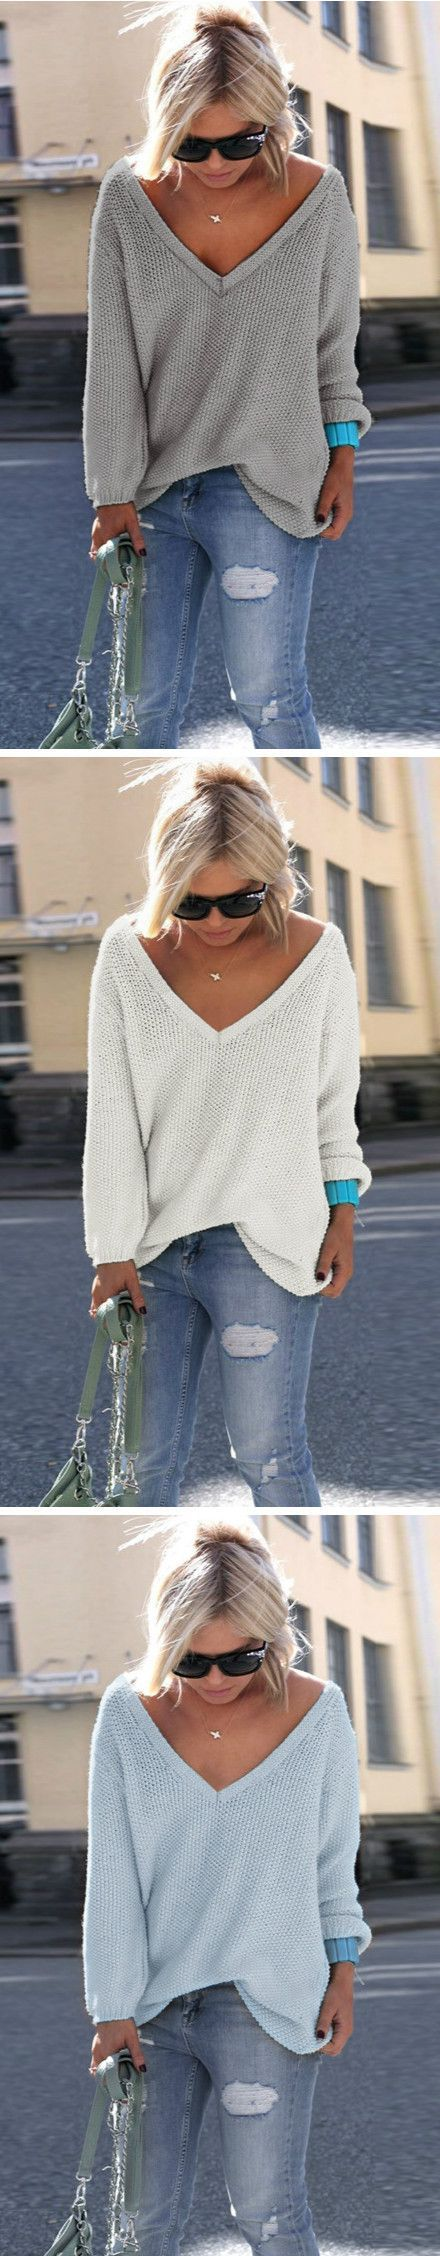 V neck sweater is the perfect choice for daily casual. This one is well-designed in comfortable fabric. Buy it at http://OASAP.com!